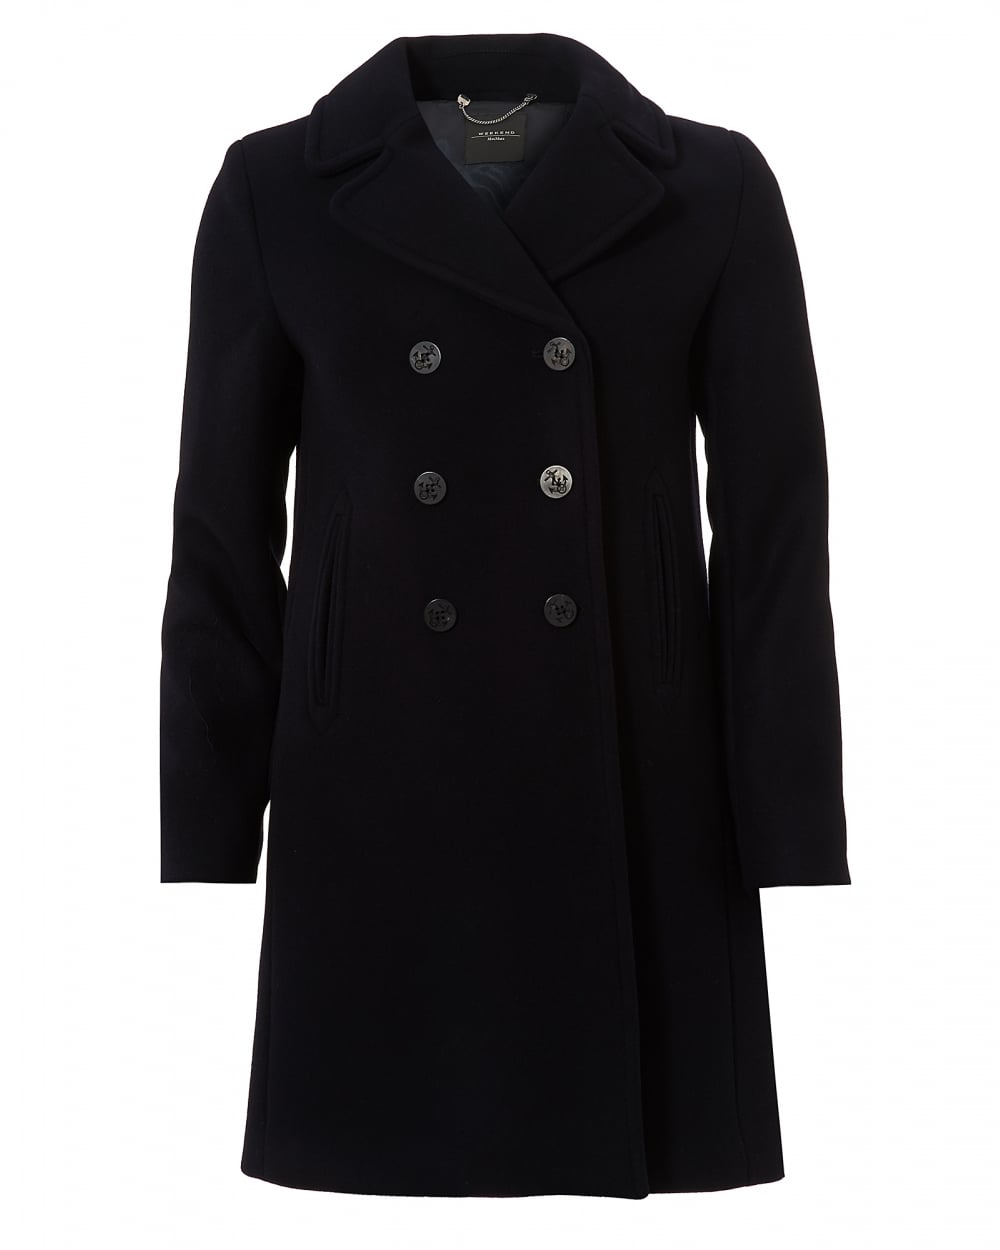 matches. ($ - $) Find great deals on the latest styles of Pure wool women casual dress. Compare prices & save money on Women's Jackets & Coats.